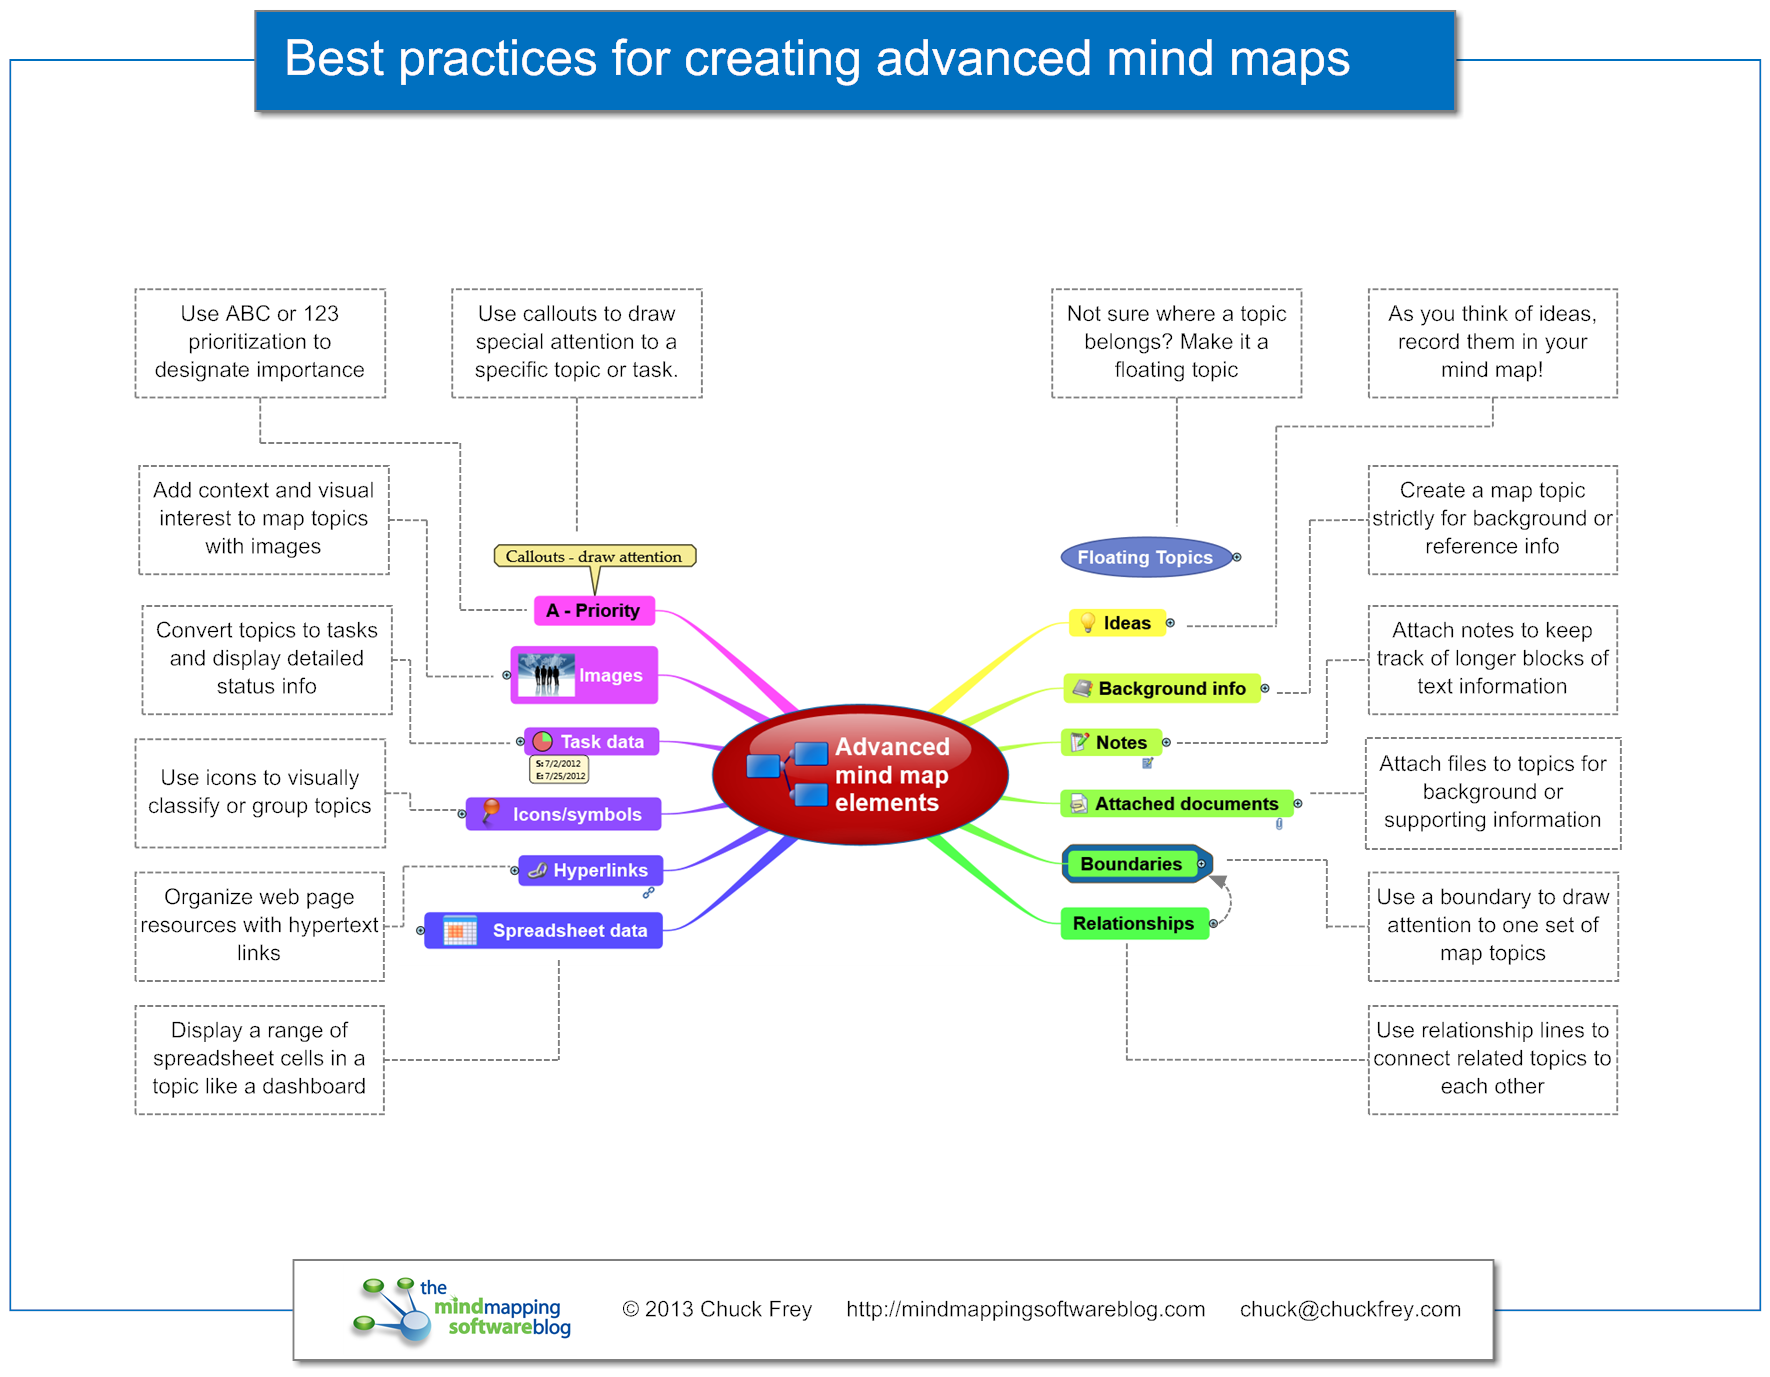 This New Infographic Summarizes 14 Best Practices For Utilizing The More Advanced Capabilities Of Mind Mapping Softwa Mind Mapping Software Mind Map I Mind Map